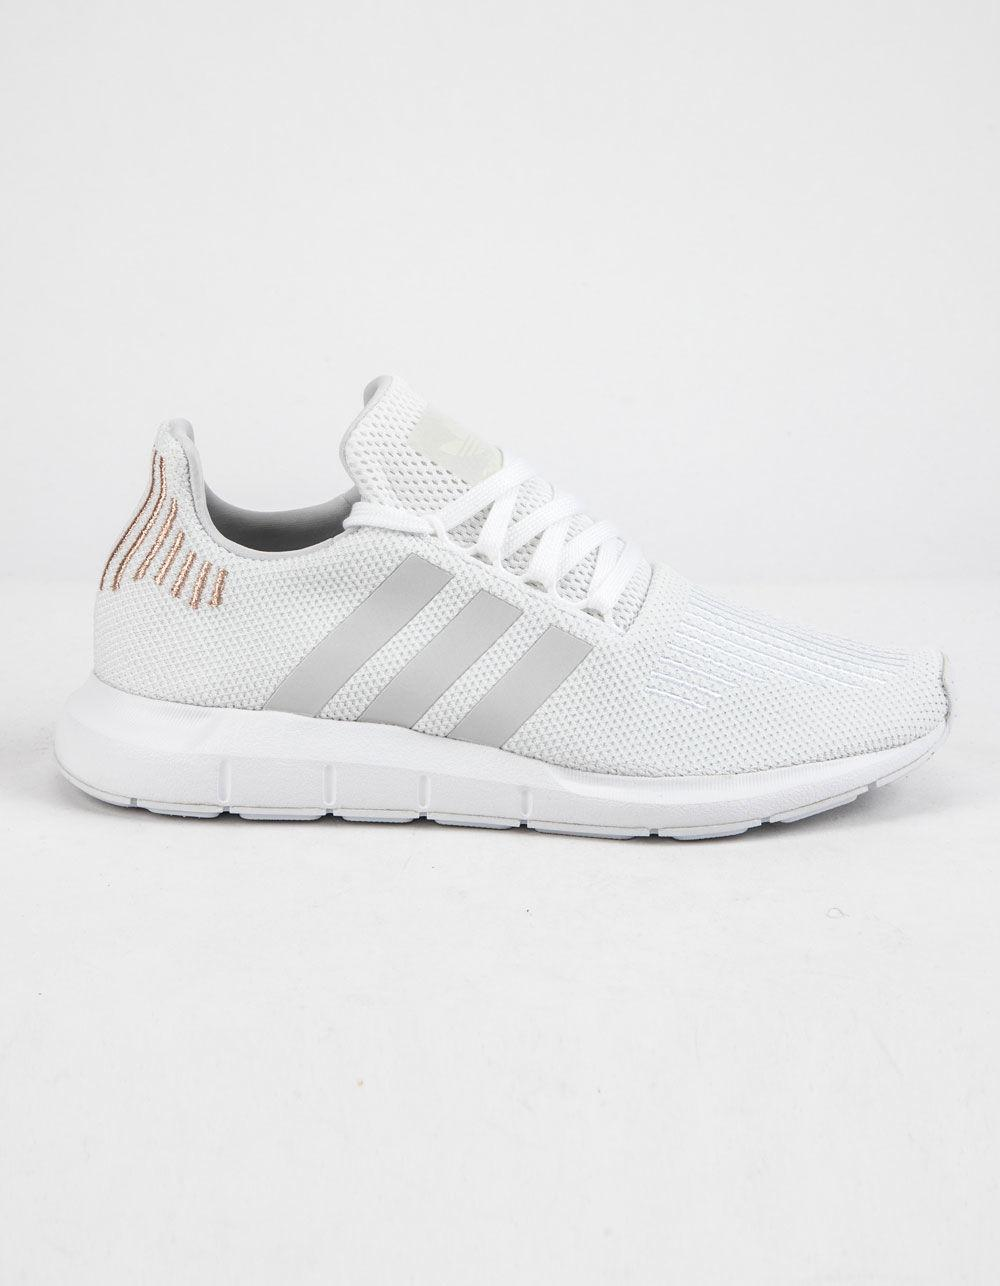 9e9942b80 Lyst - adidas Swift Run Cloud White   Crystal White Womens Shoes in ...